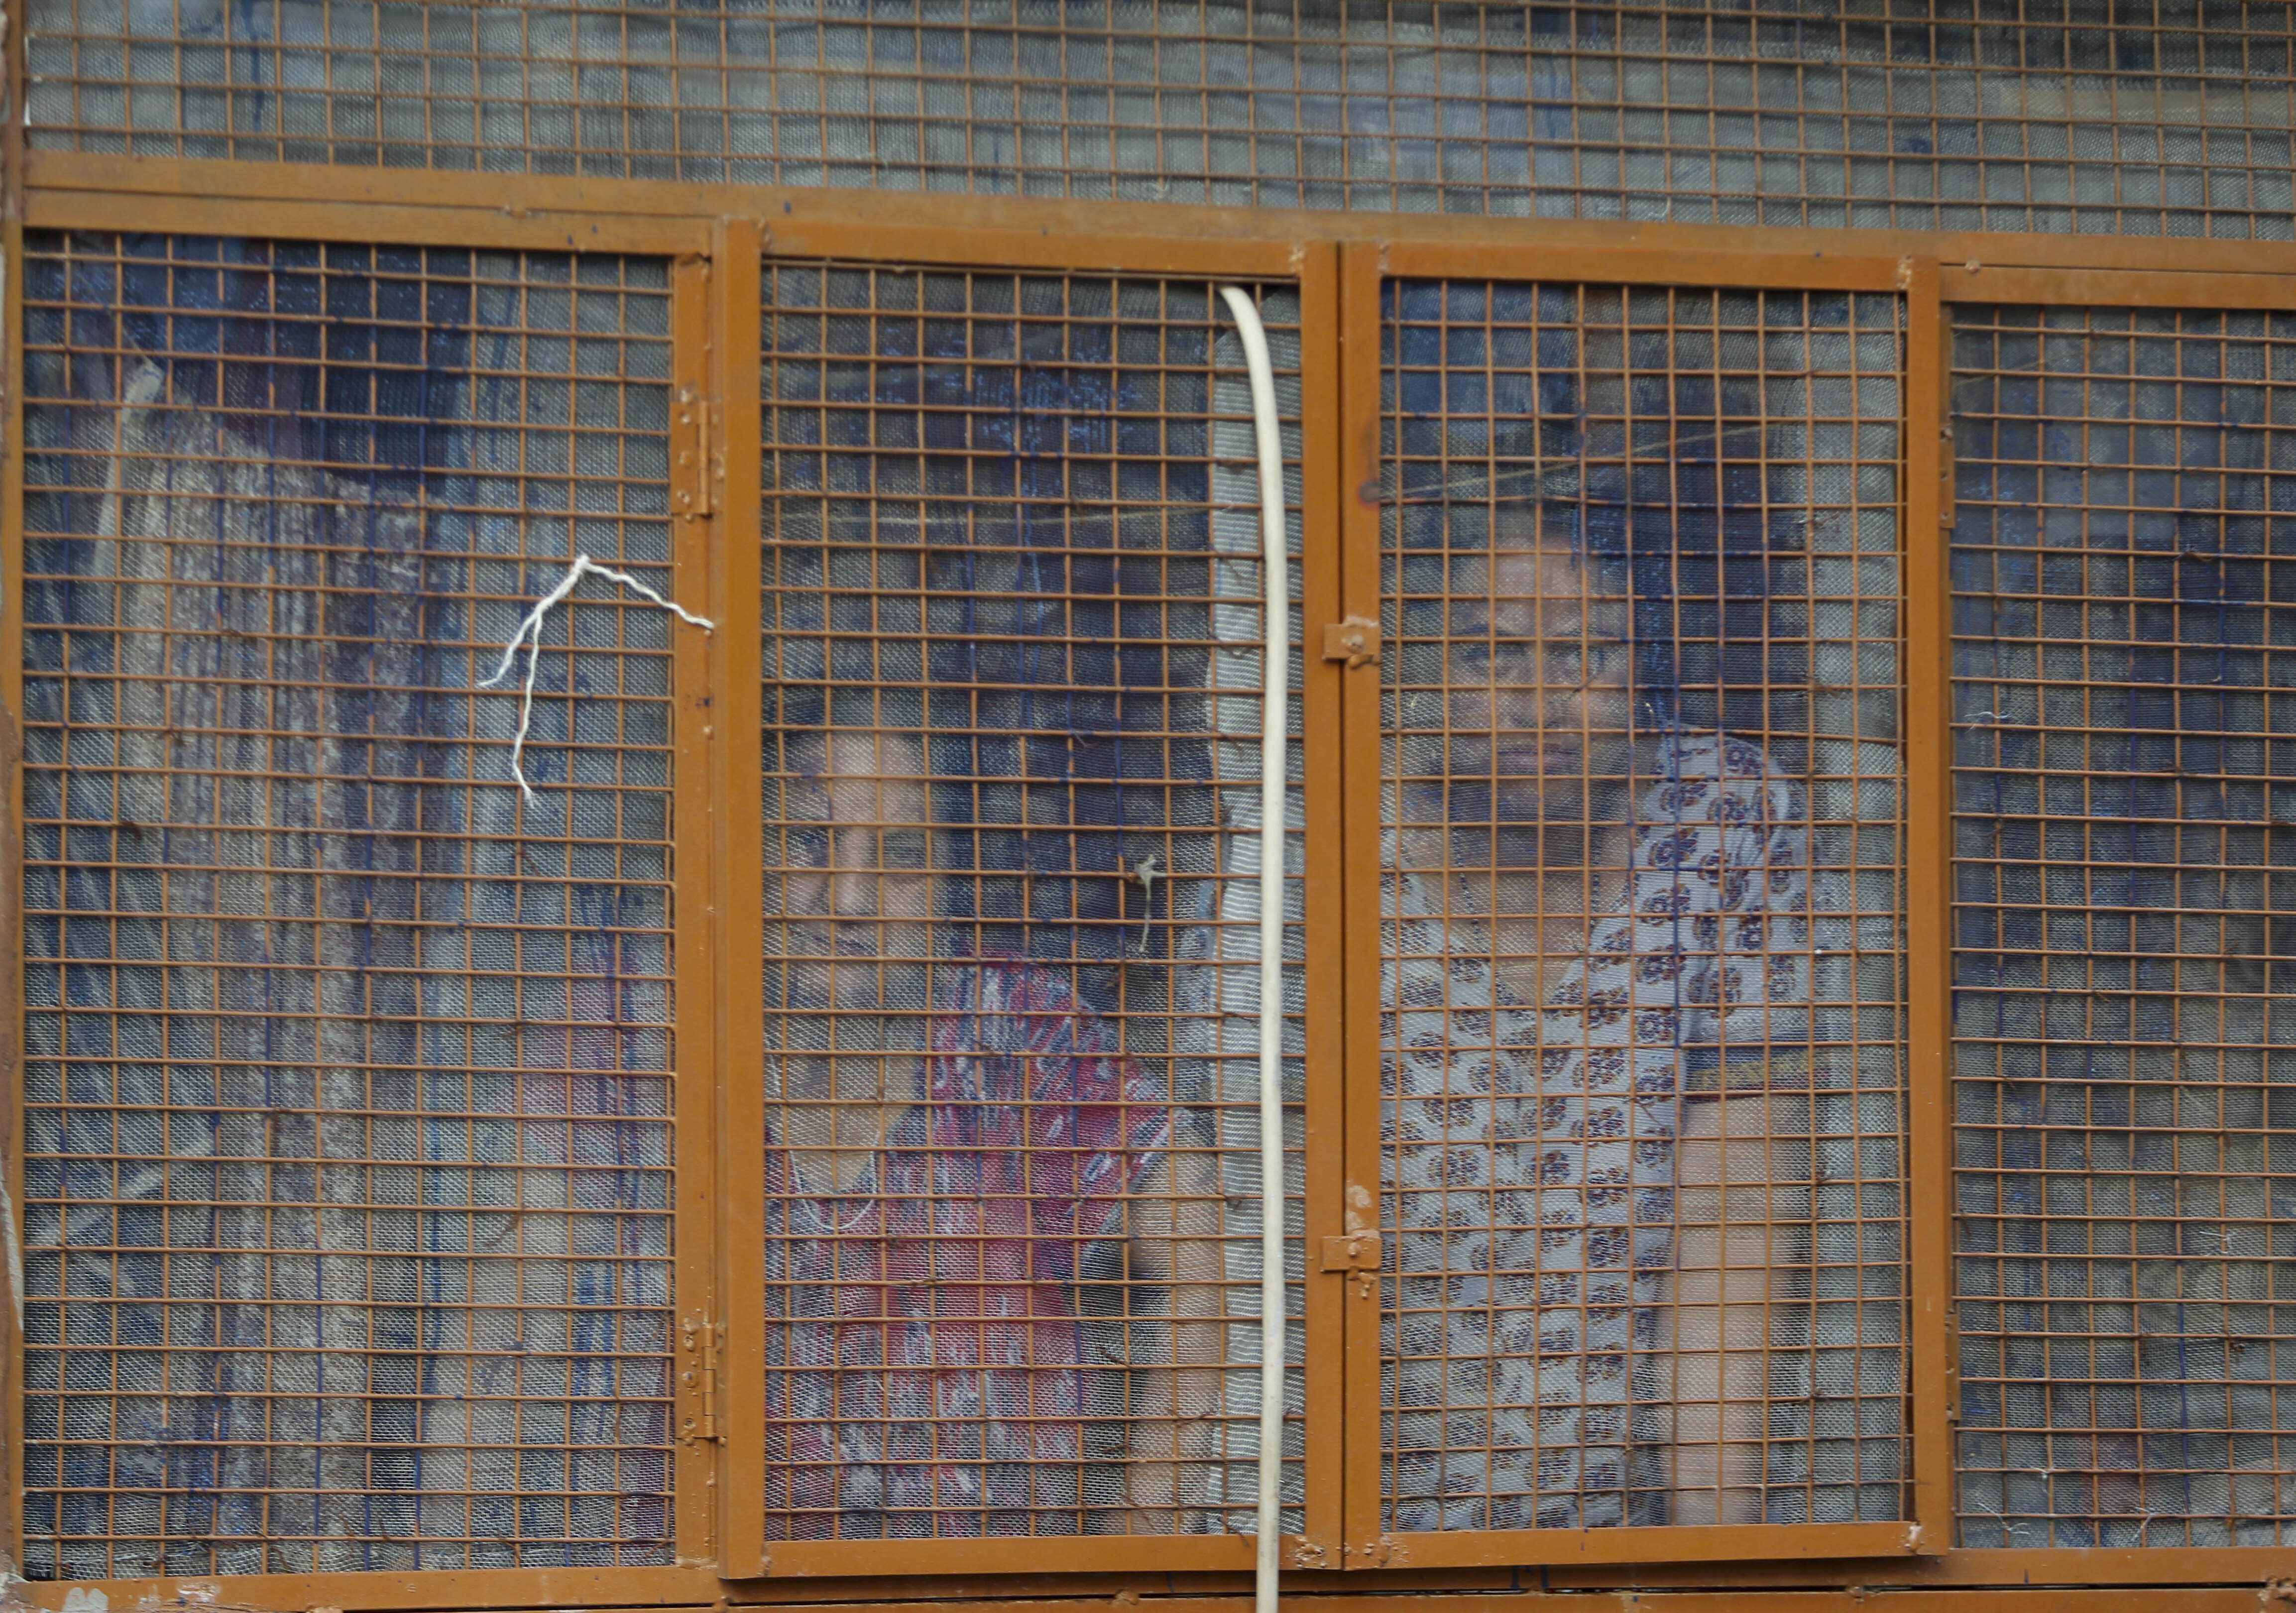 In this Aug. 23, 2019, photo, Kashmiri Hindu women look from inside their residence at the Jagti migrant camp in Jammu, India. Tens of thousands of Kashmiri Hindus fled the restive region nearly 30 years ago, and the ghost of insurgency and their mass exodus still haunts them. They celebrated after India's Hindu nationalist-led government stripped political autonomy from its part of Muslim-majority Kashmir on Aug. 5. Kashmiri Hindus view it as a step toward justice and possible return to their homeland. But many are still wary of returning. (AP Photo/Channi Anand)